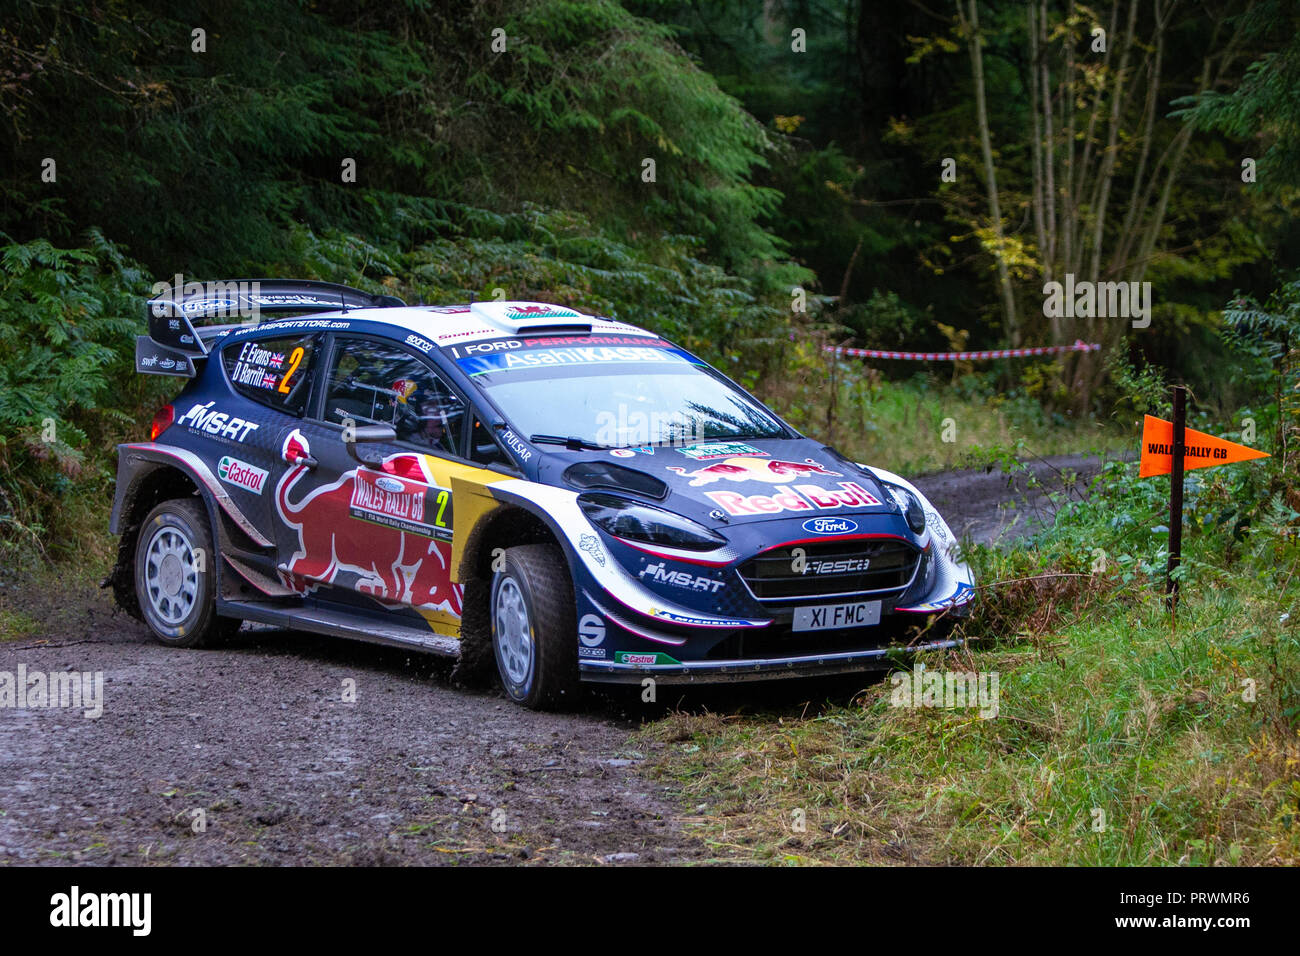 wrc ford stock photos wrc ford stock images page 2 alamy. Black Bedroom Furniture Sets. Home Design Ideas